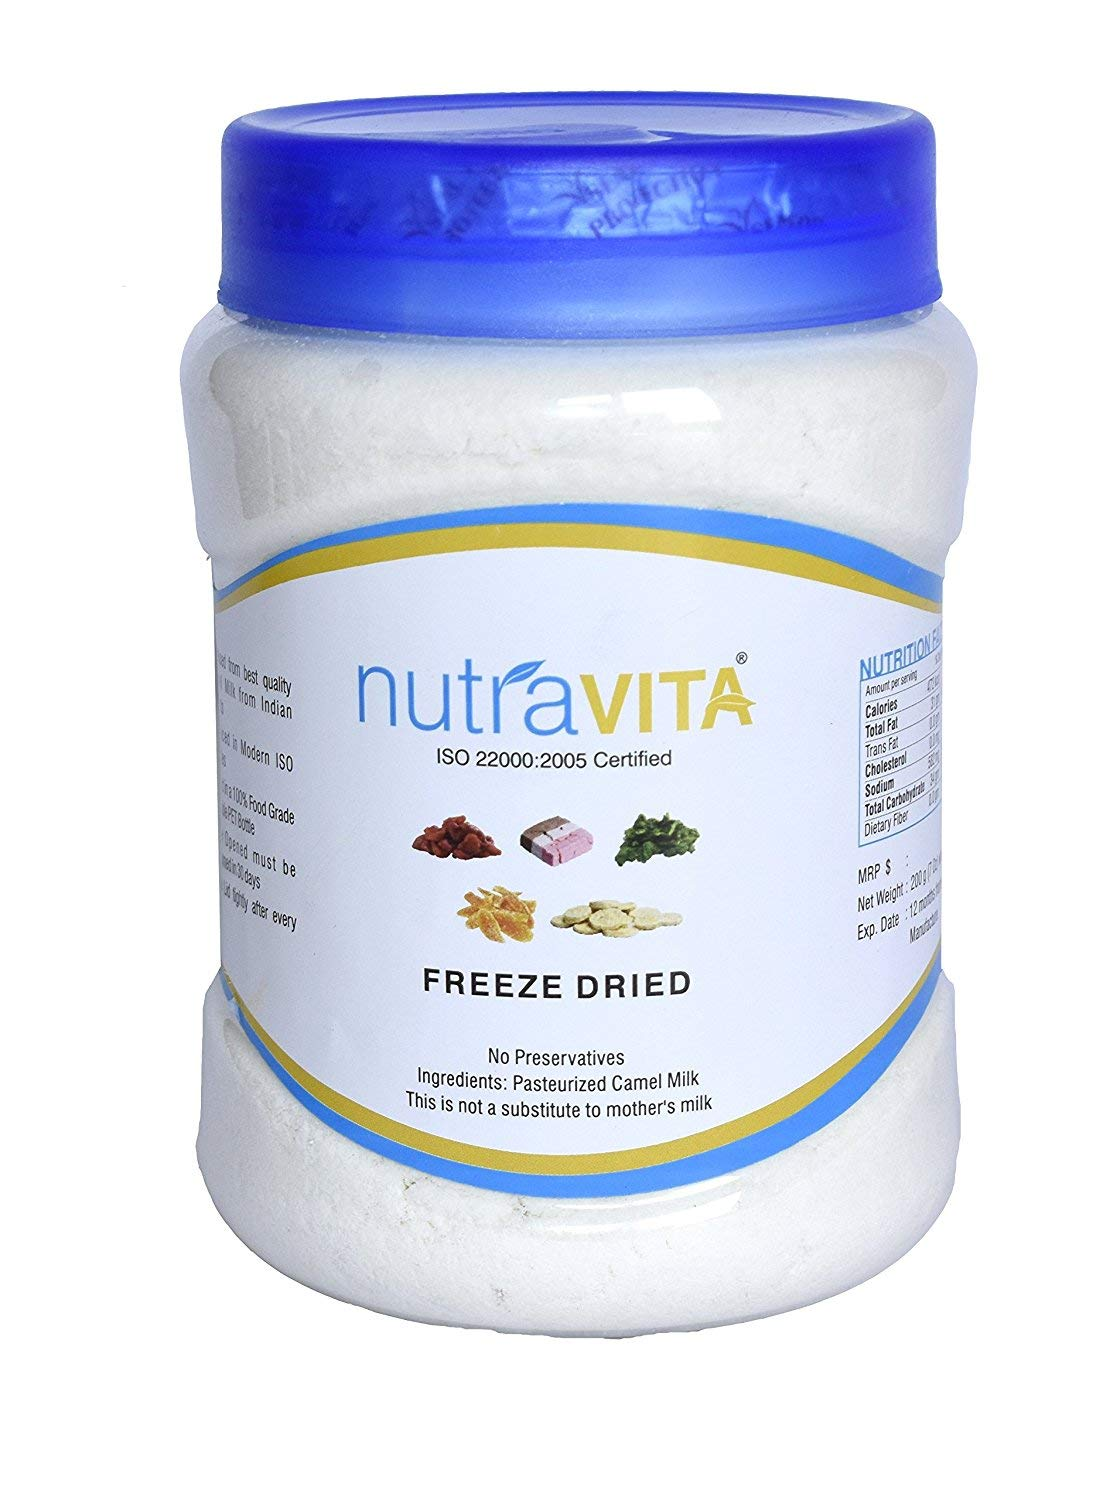 Nutra Vita Freeze Dried Camel Milk Powder 500 G (Natural, Gluten Free, No Added Color,Flavours Or Preservatives) by Nutra Vita (Image #2)